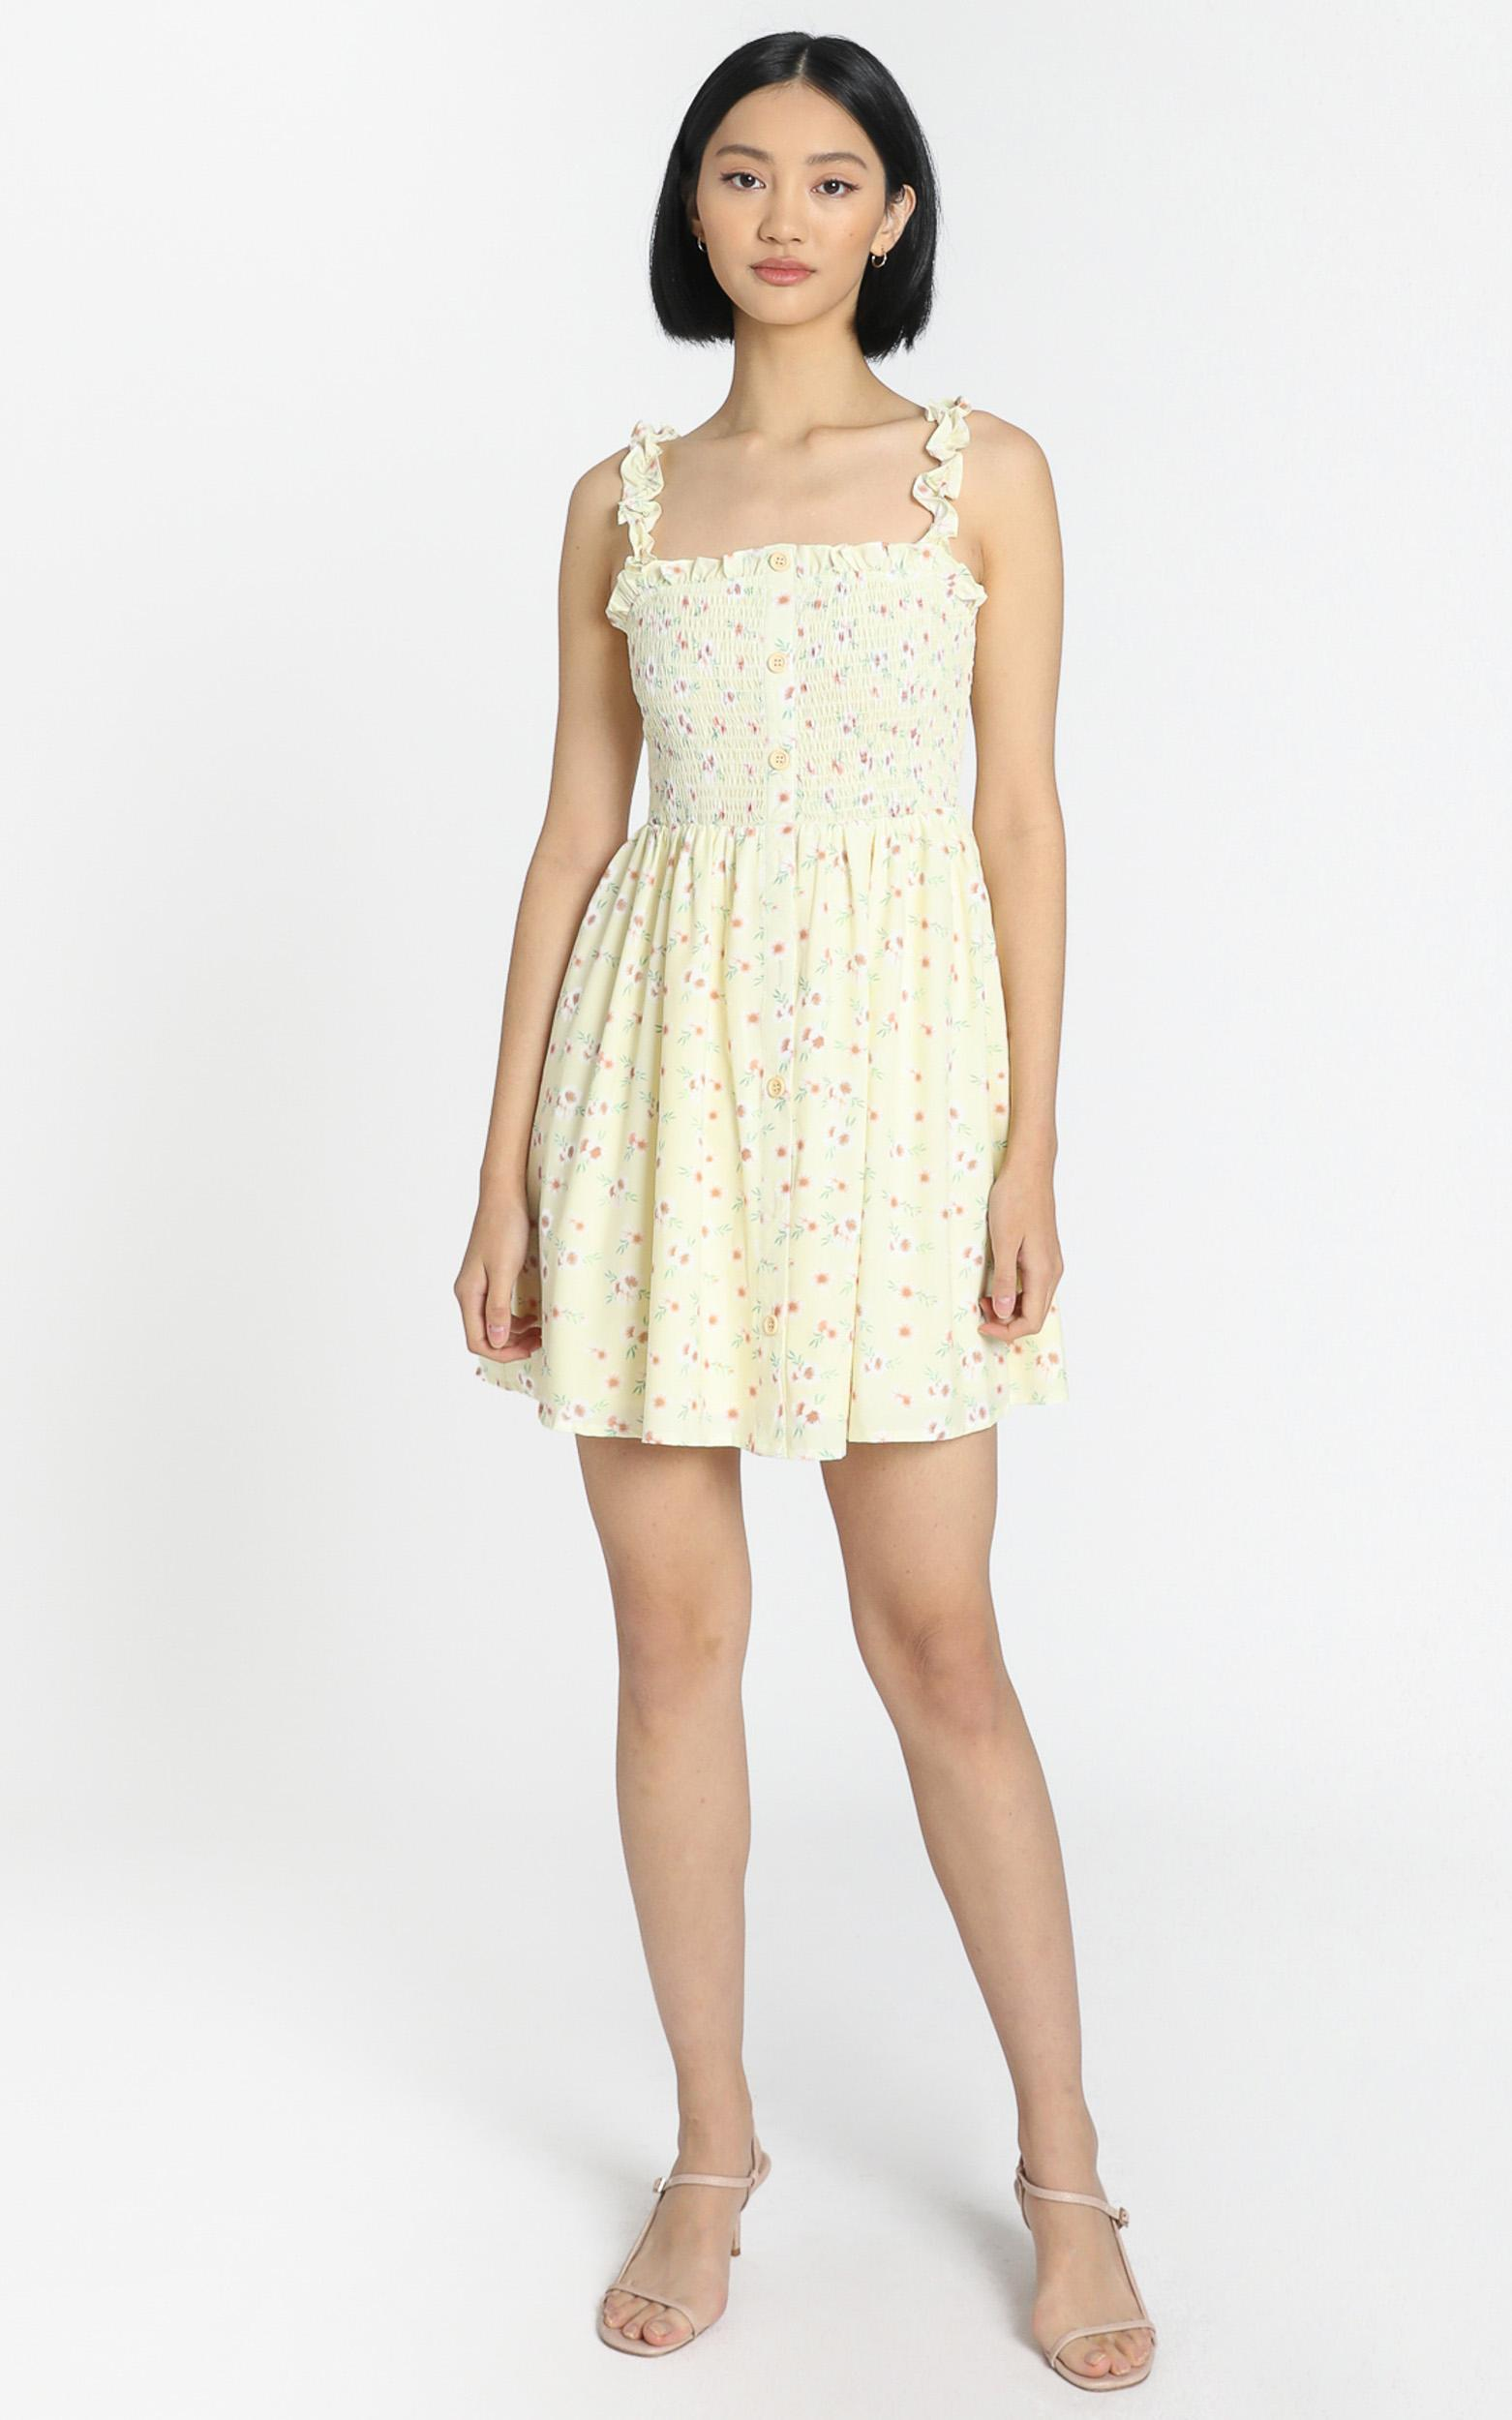 Summer Rain Mini in Yellow Floral - 6 (XS), Yellow, hi-res image number null